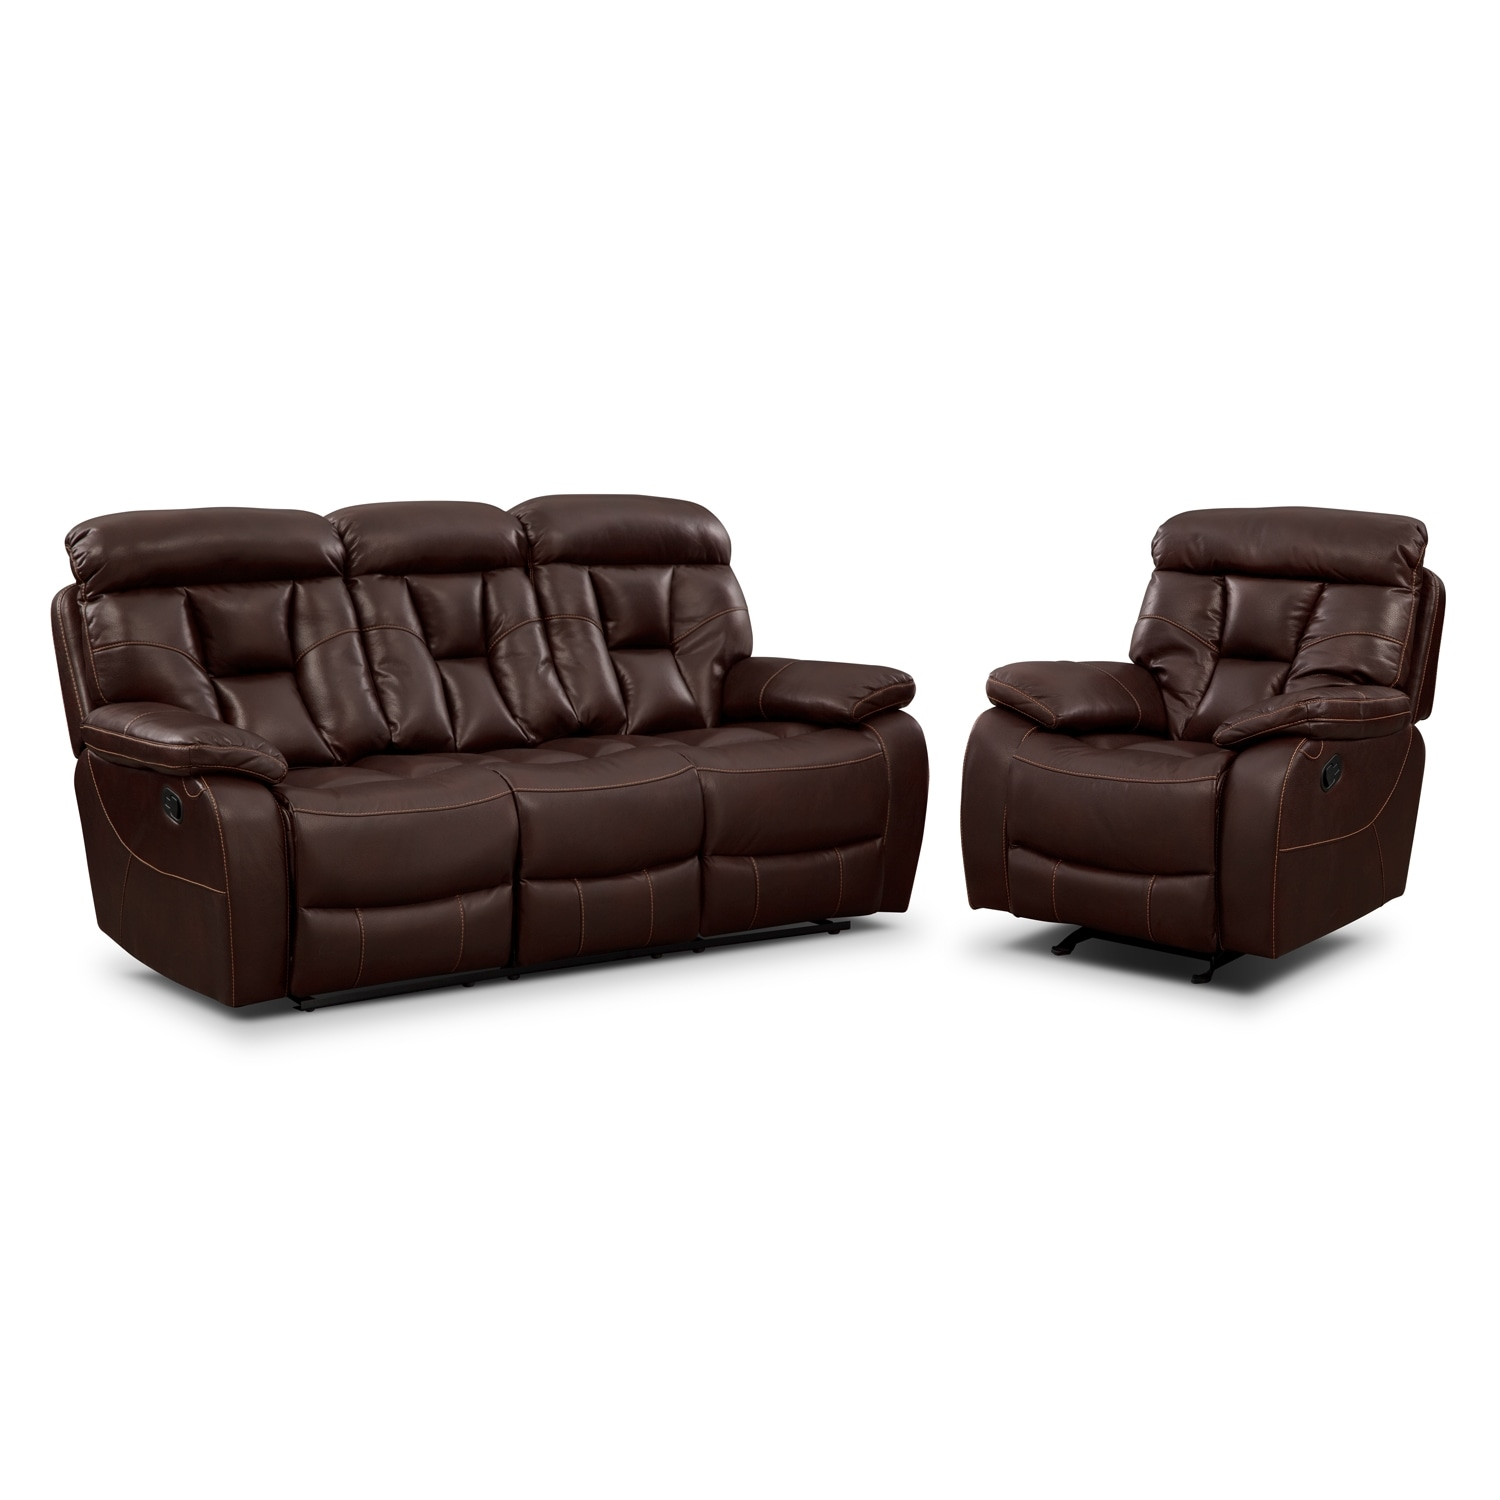 Living Room Furniture - Dakota 2 Pc. Living Room w/ Glider Recliner